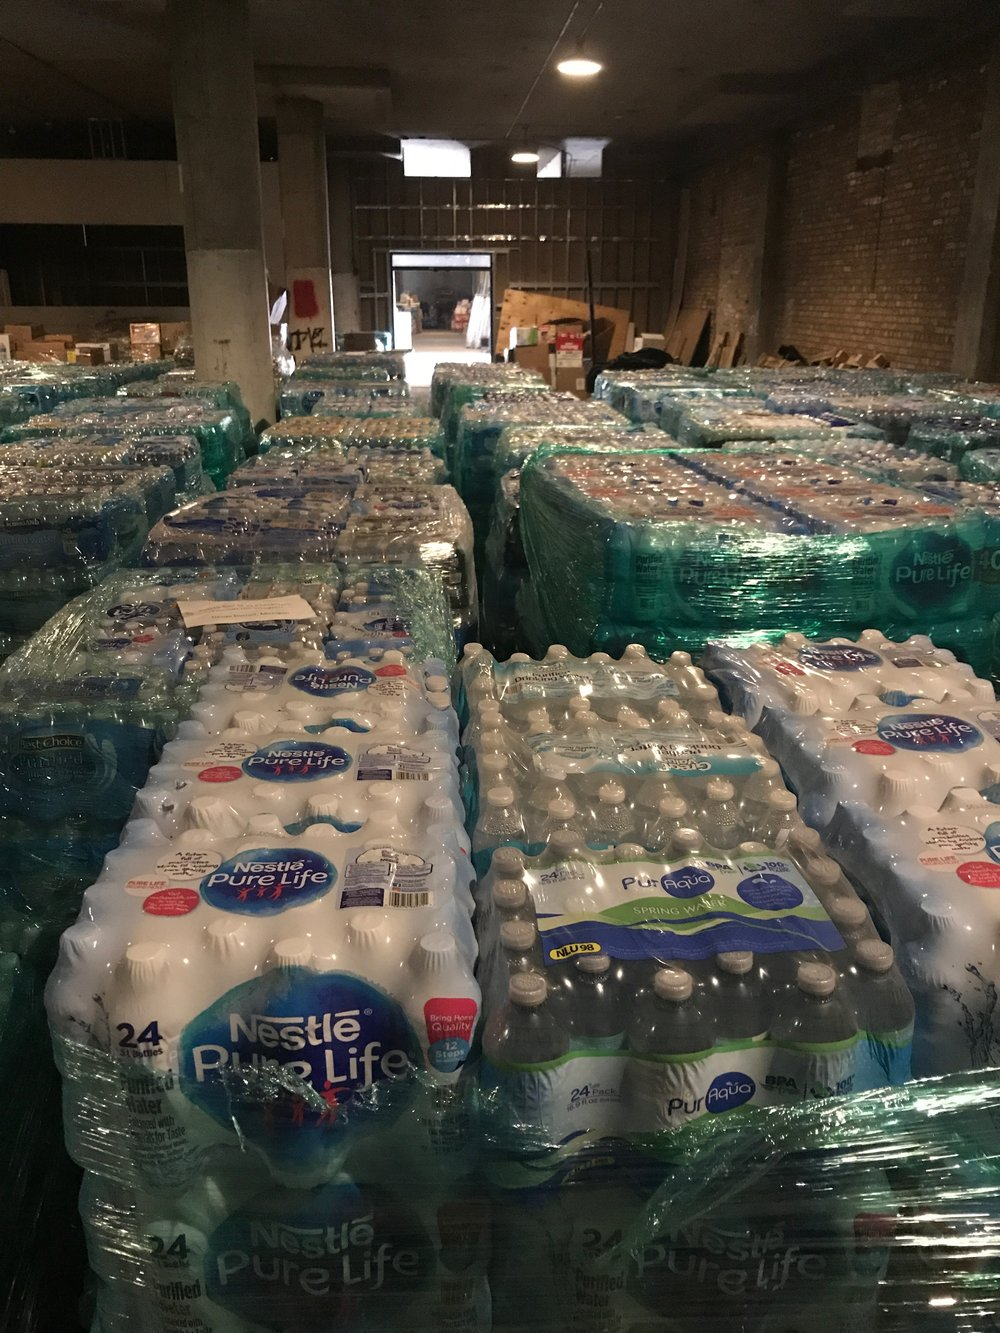 This is a portion of the water supply that we shipped to Aguada PR, provided by Grace and Peace Community Church in Chicago. This shipment arrived in Aguada November 6, 2017 for distribution to areas greatly affected by Hurricane Maria.